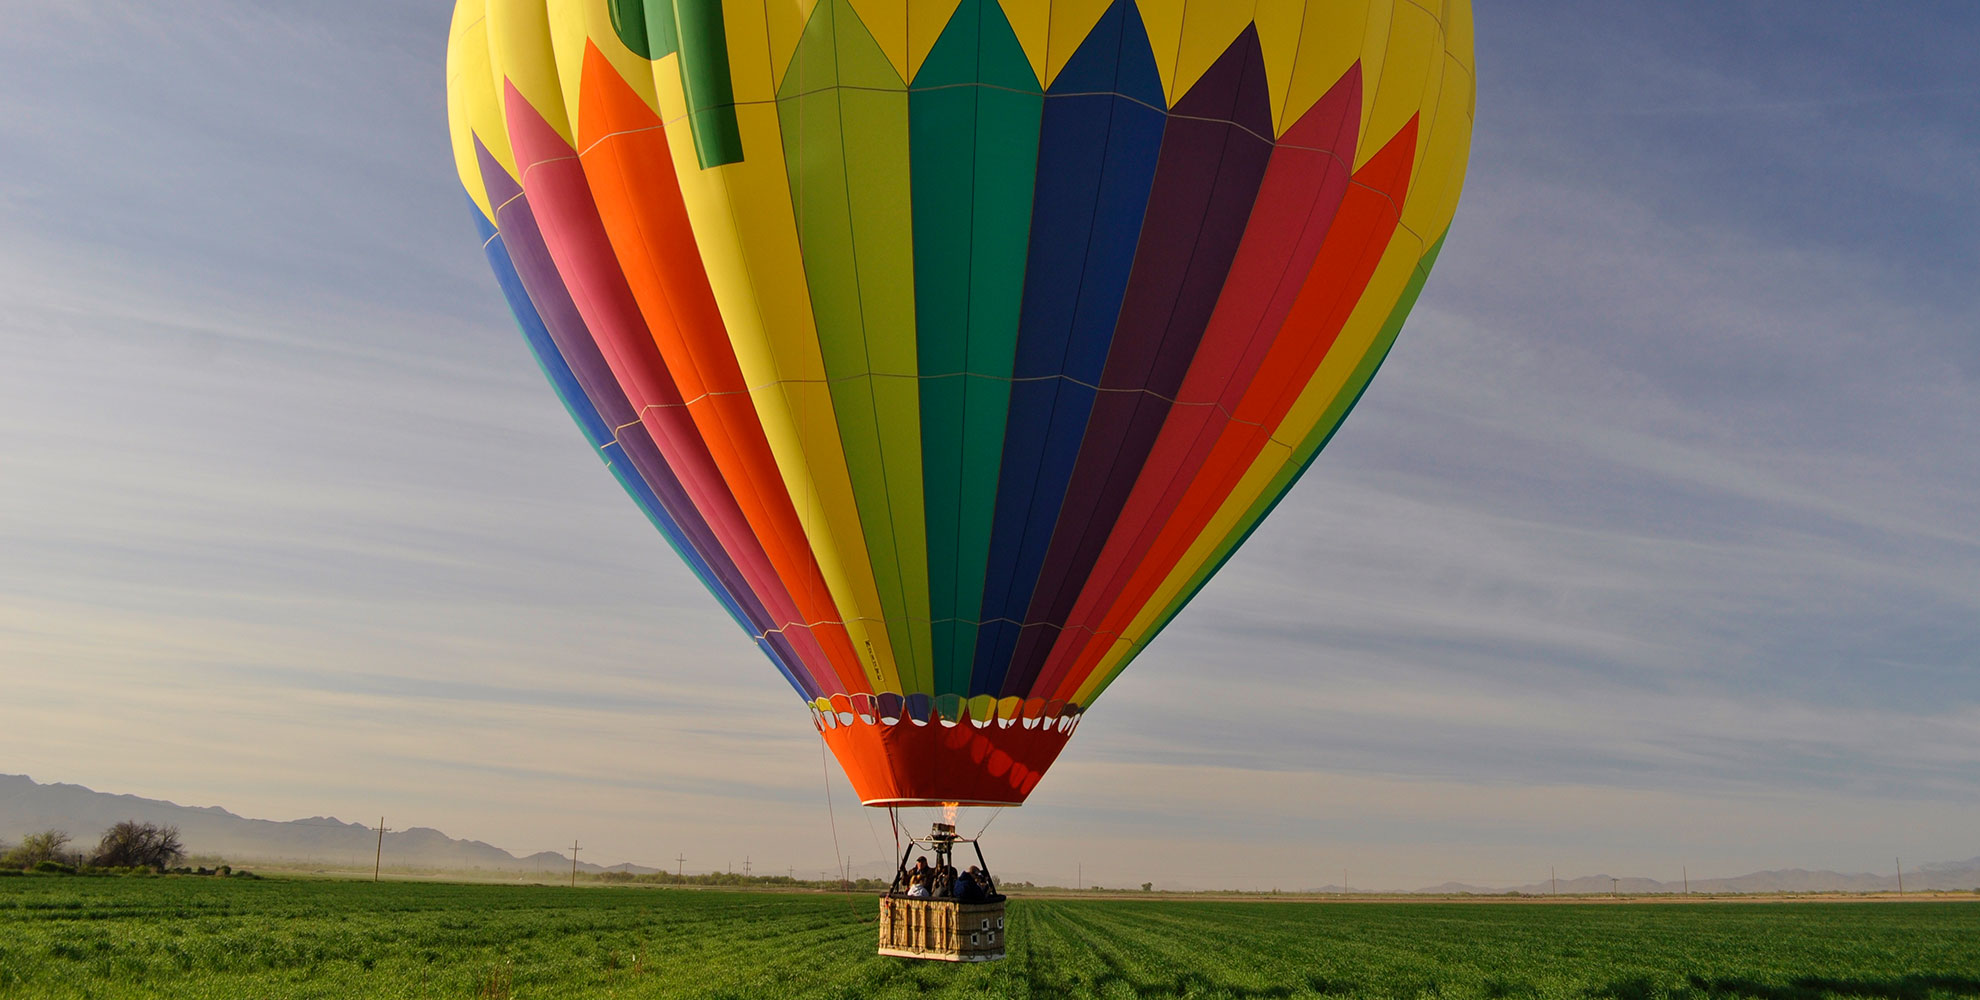 large colorful hot air balloon